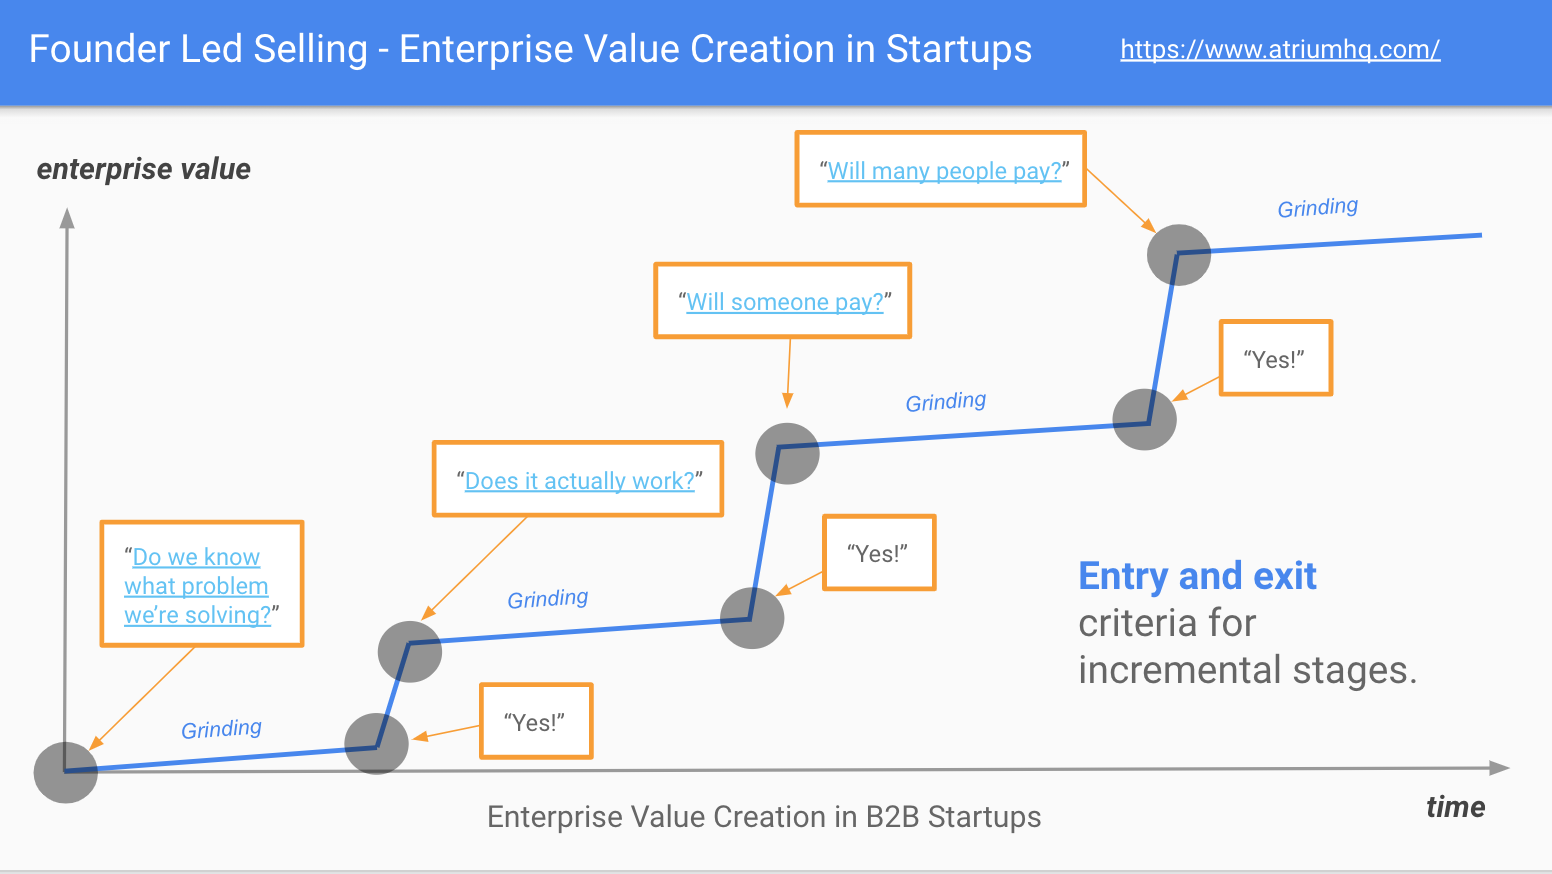 Enterprise value creation chart